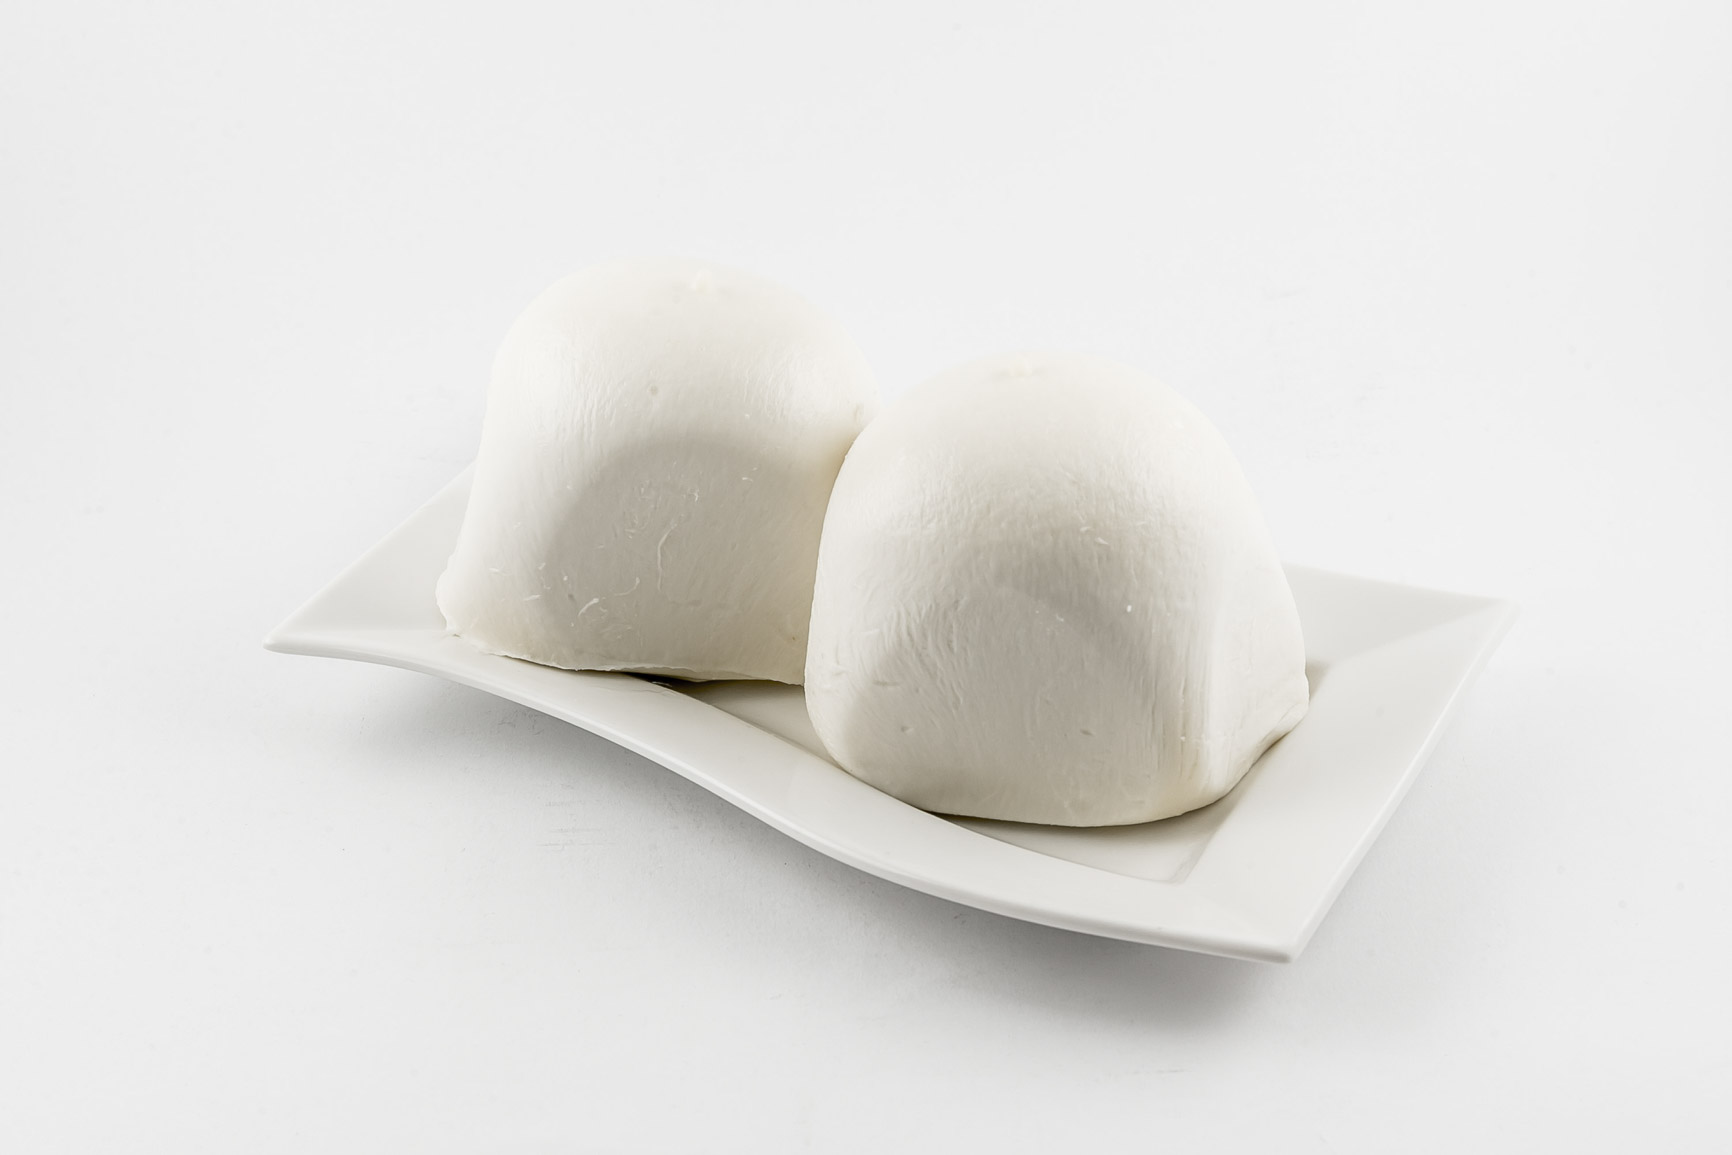 FROZEN MOZZARELLA FIOR DI LATTE LA SPECIALE FOR PIZZA